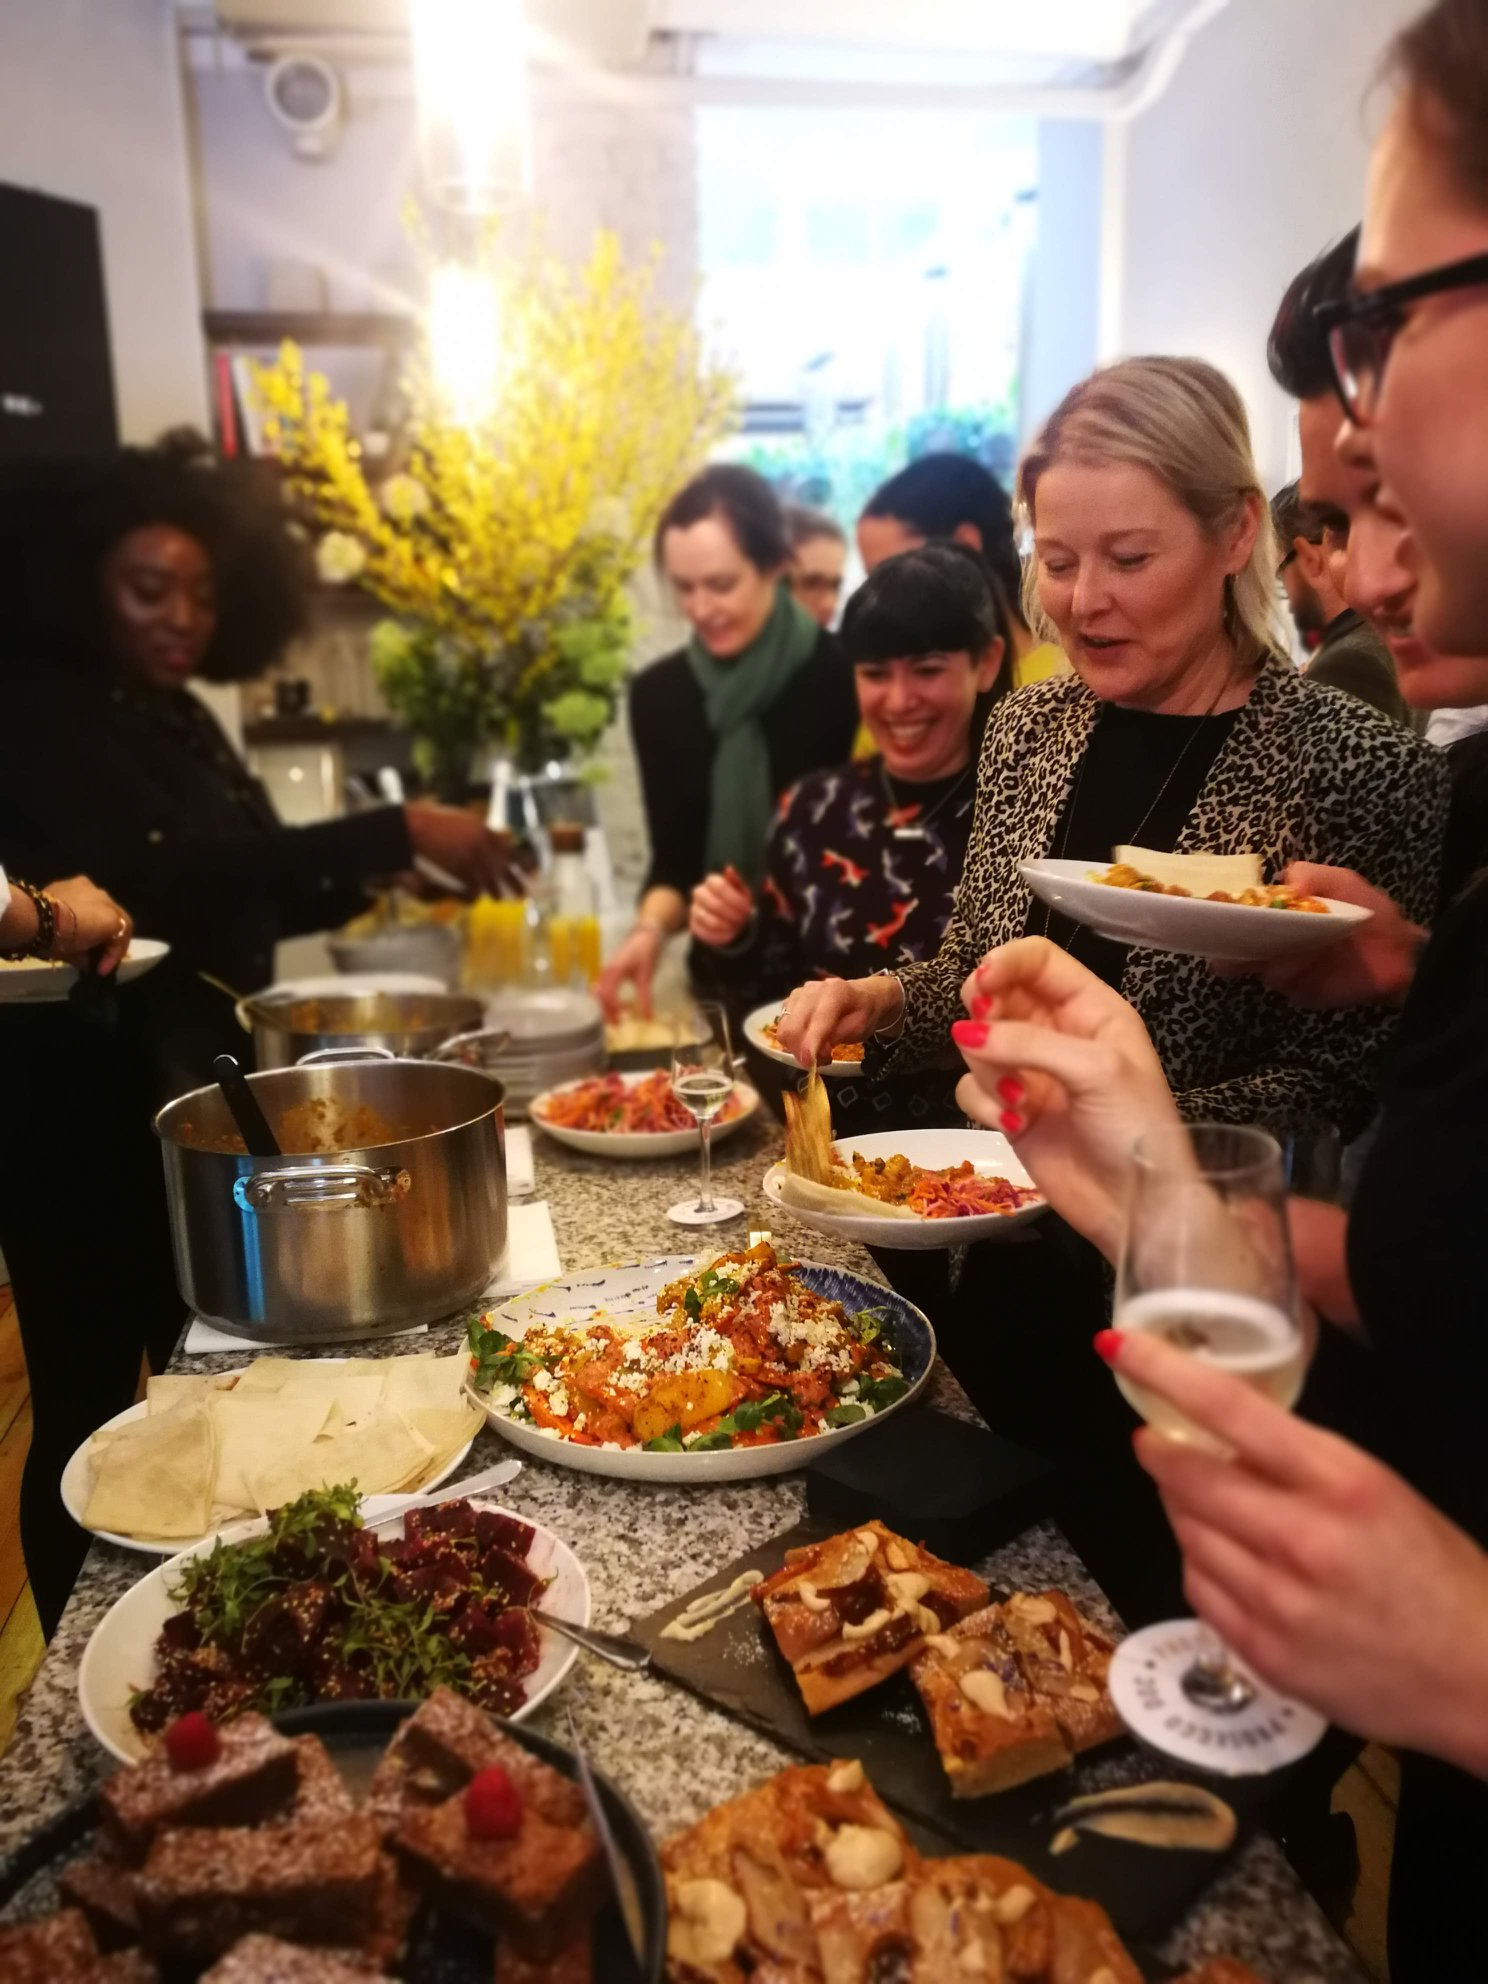 WiFi-Launch-Spread-of-food-at-Allbright